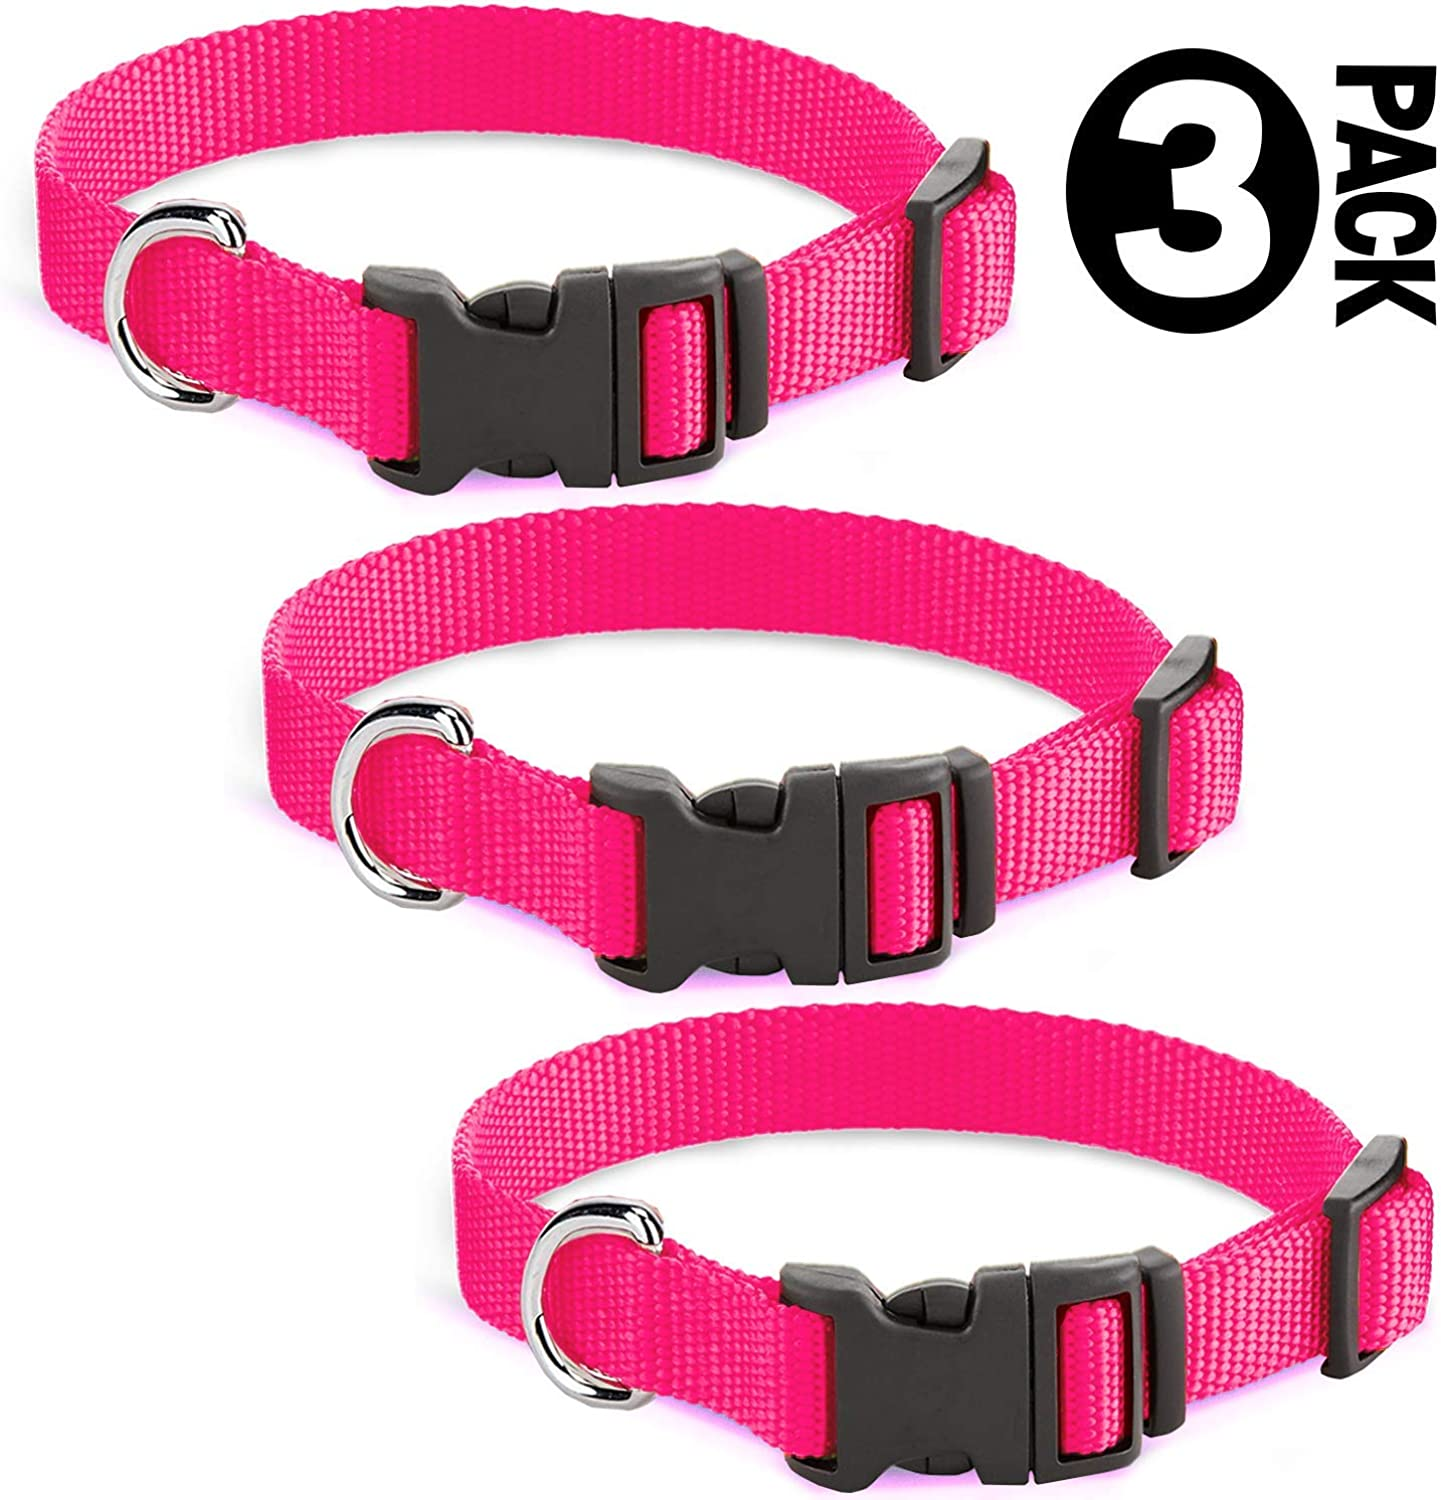 3 Pack Pink Collar for Medium Size Dogs (Upto 45 lb), Adjustable with Clip Buckle, Made of Nylon Fabric, Measures 1420 L x 3 4 W.